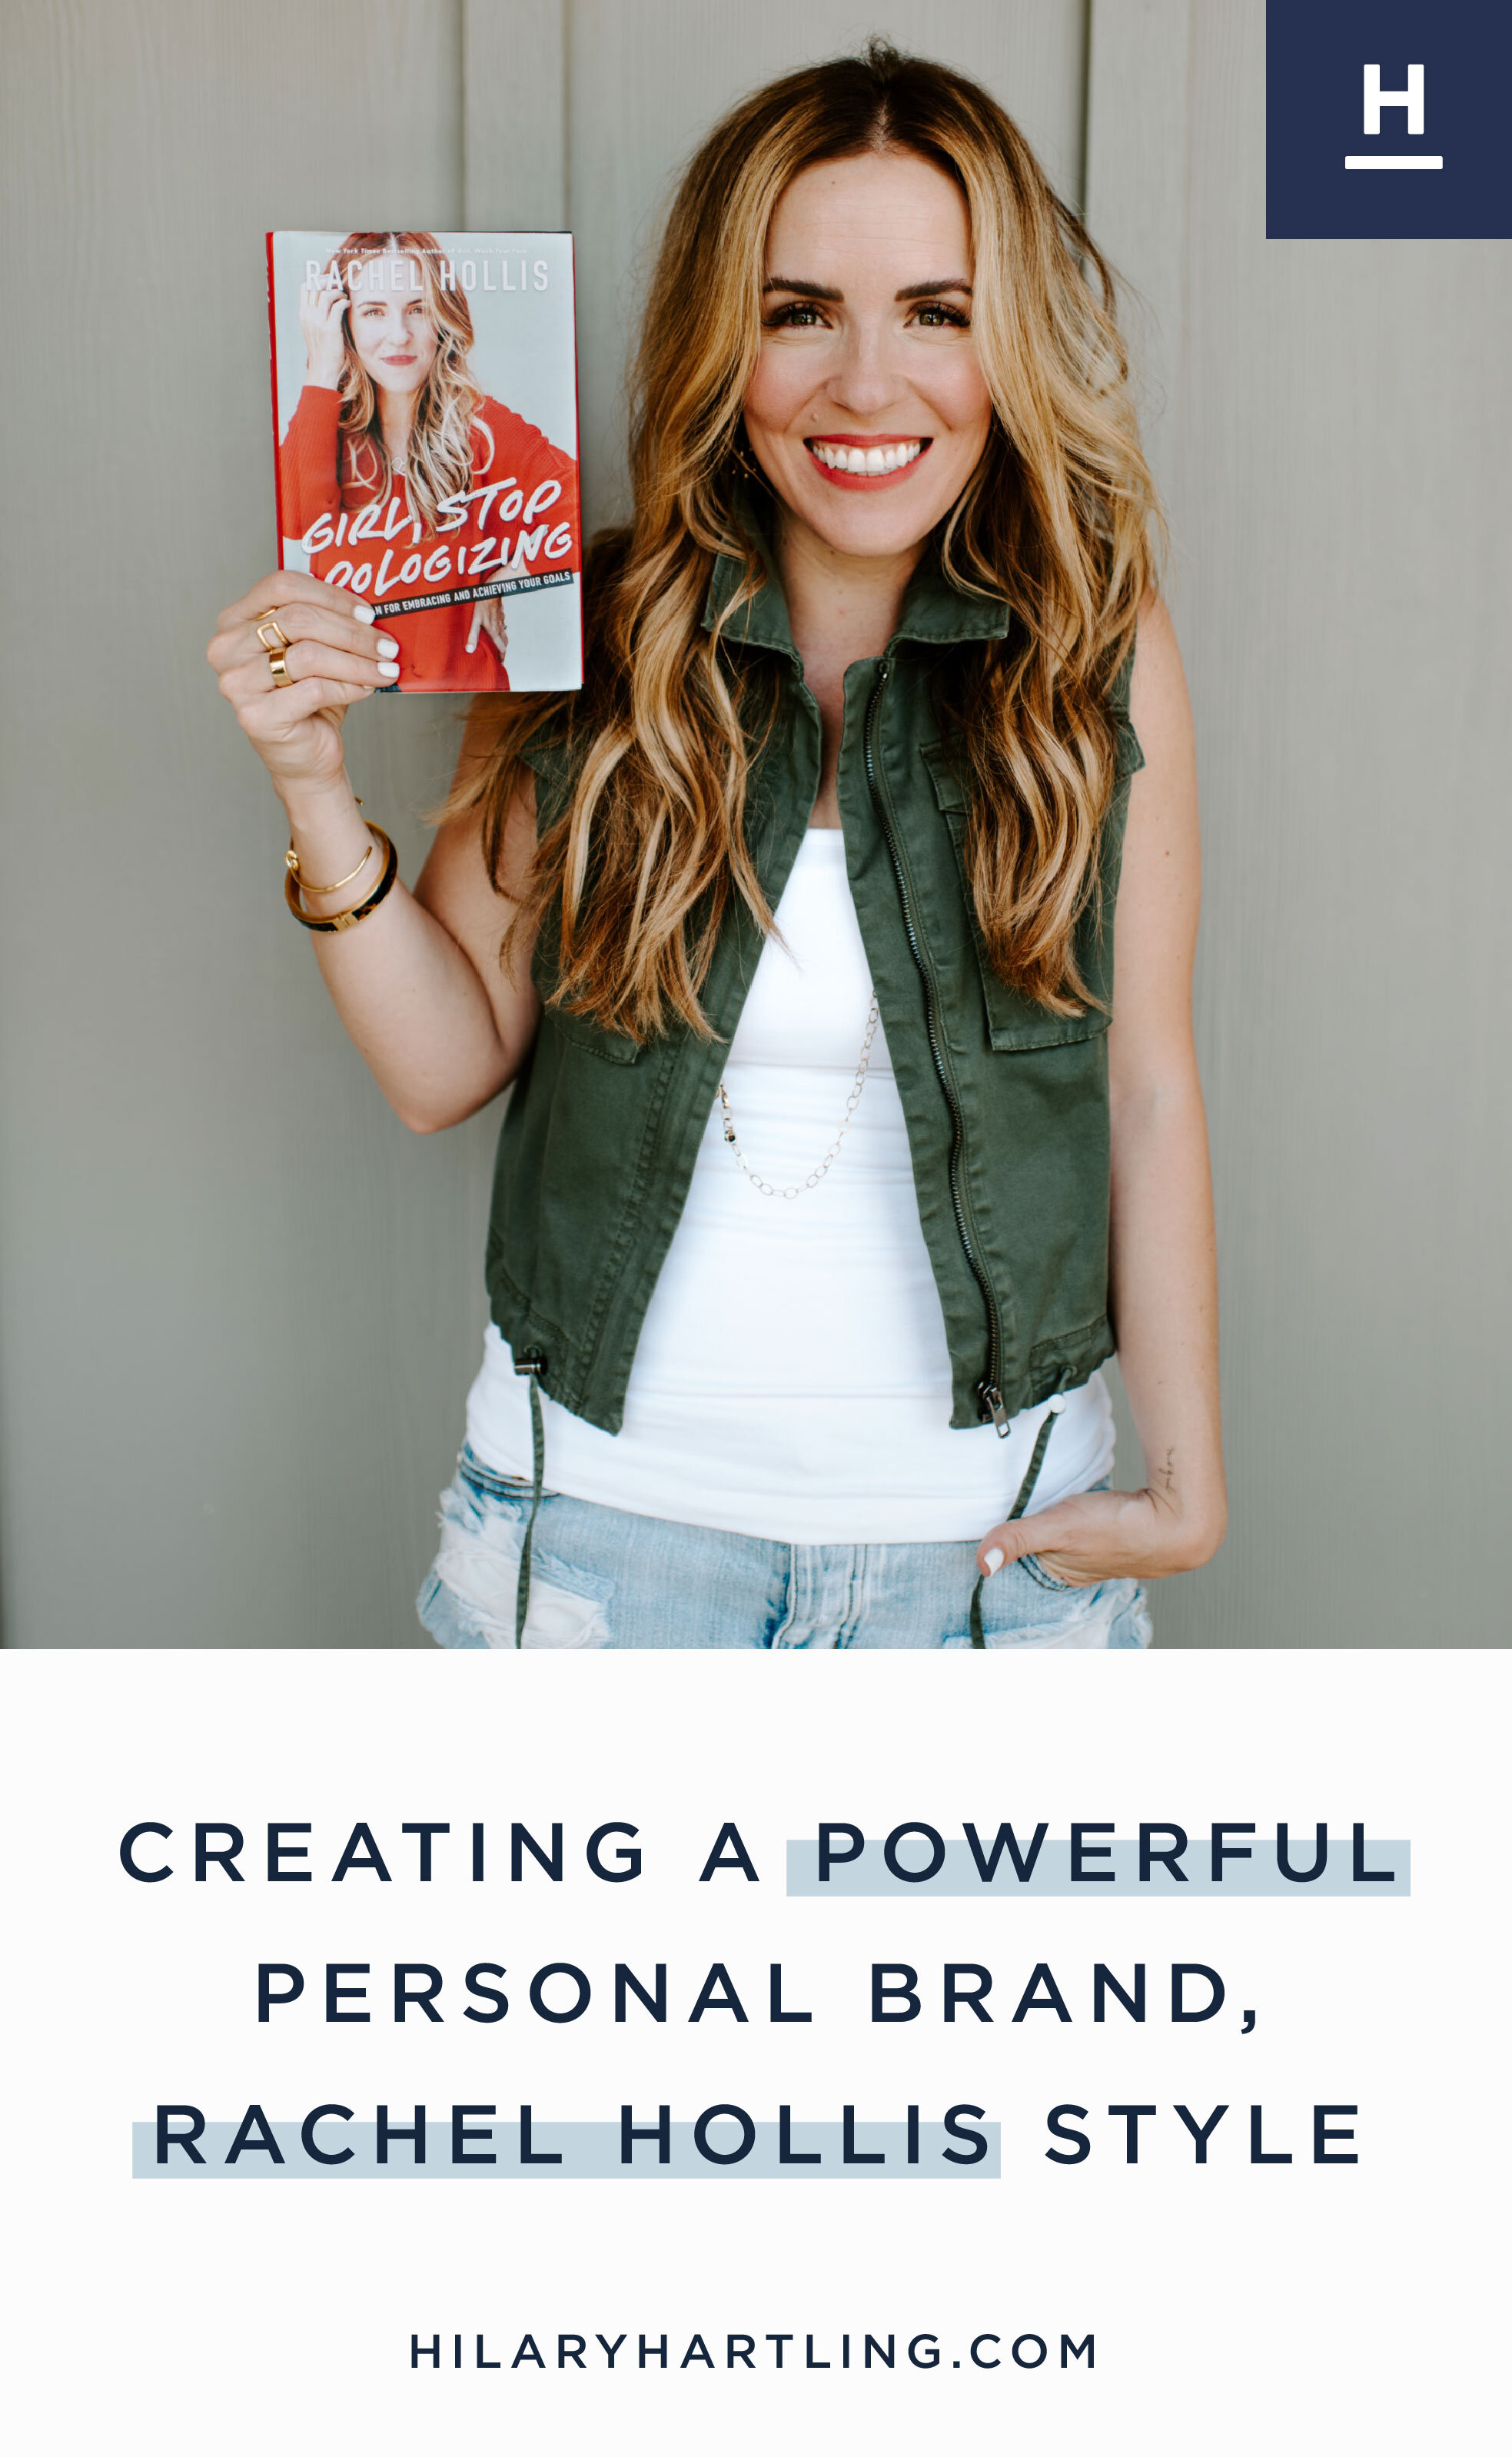 Creating-A-Powerful-Personal-Brand,-Rachel-Hollis-Style.jpg